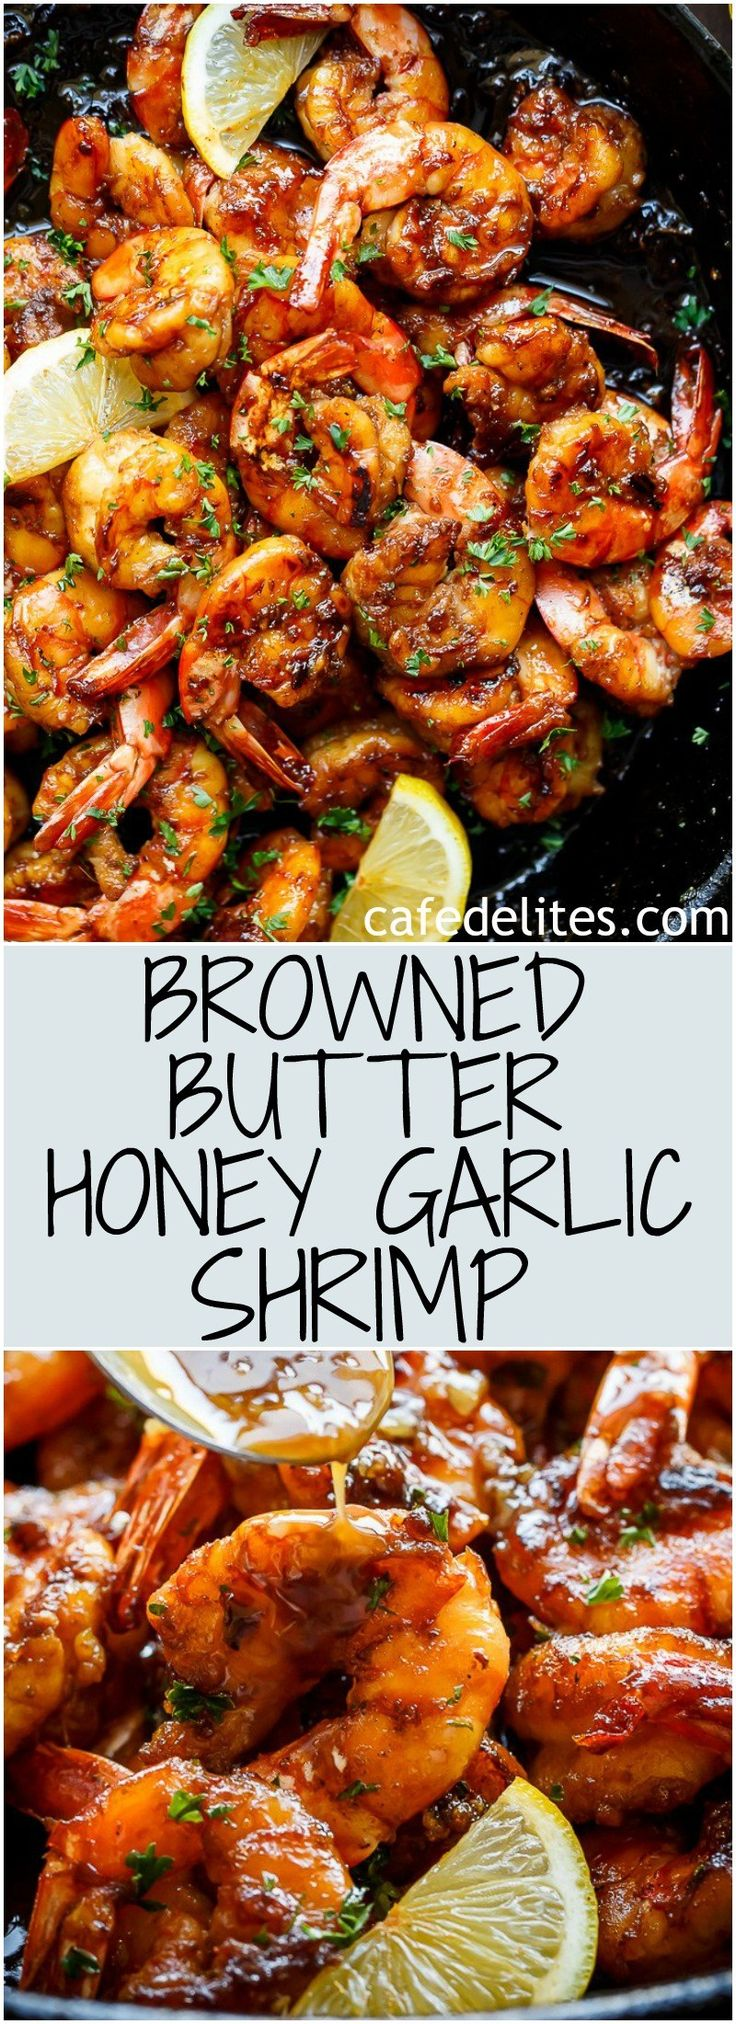 Browned Butter Honey Garlic Shrimp feels like a gourmet shrimp meal, with half of the effort, maximum taste and all in less than 15 minutes! | https://cafedelites.com